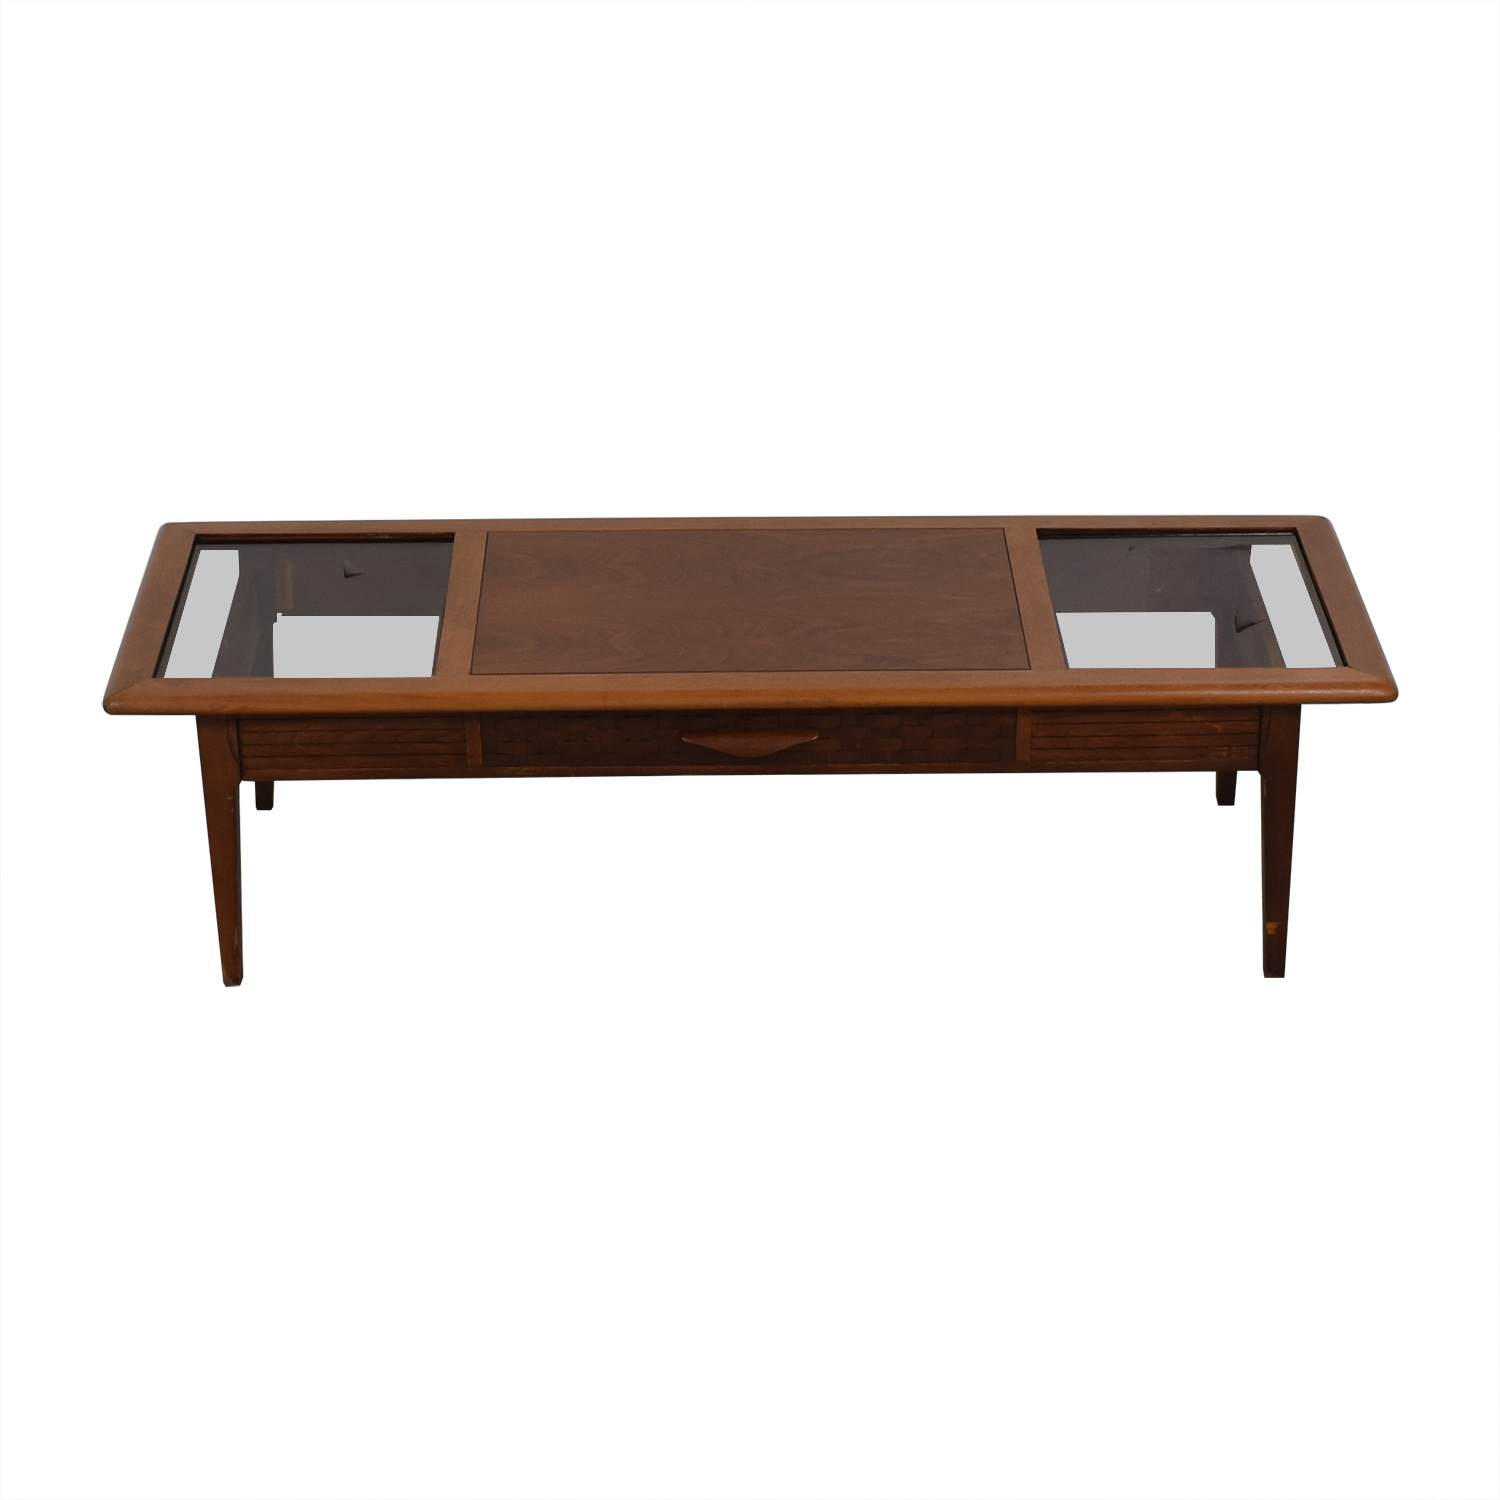 61% OFF - Lane Furniture Lane Furniture Vintage Glass and Wood Coffee Table  / Tables